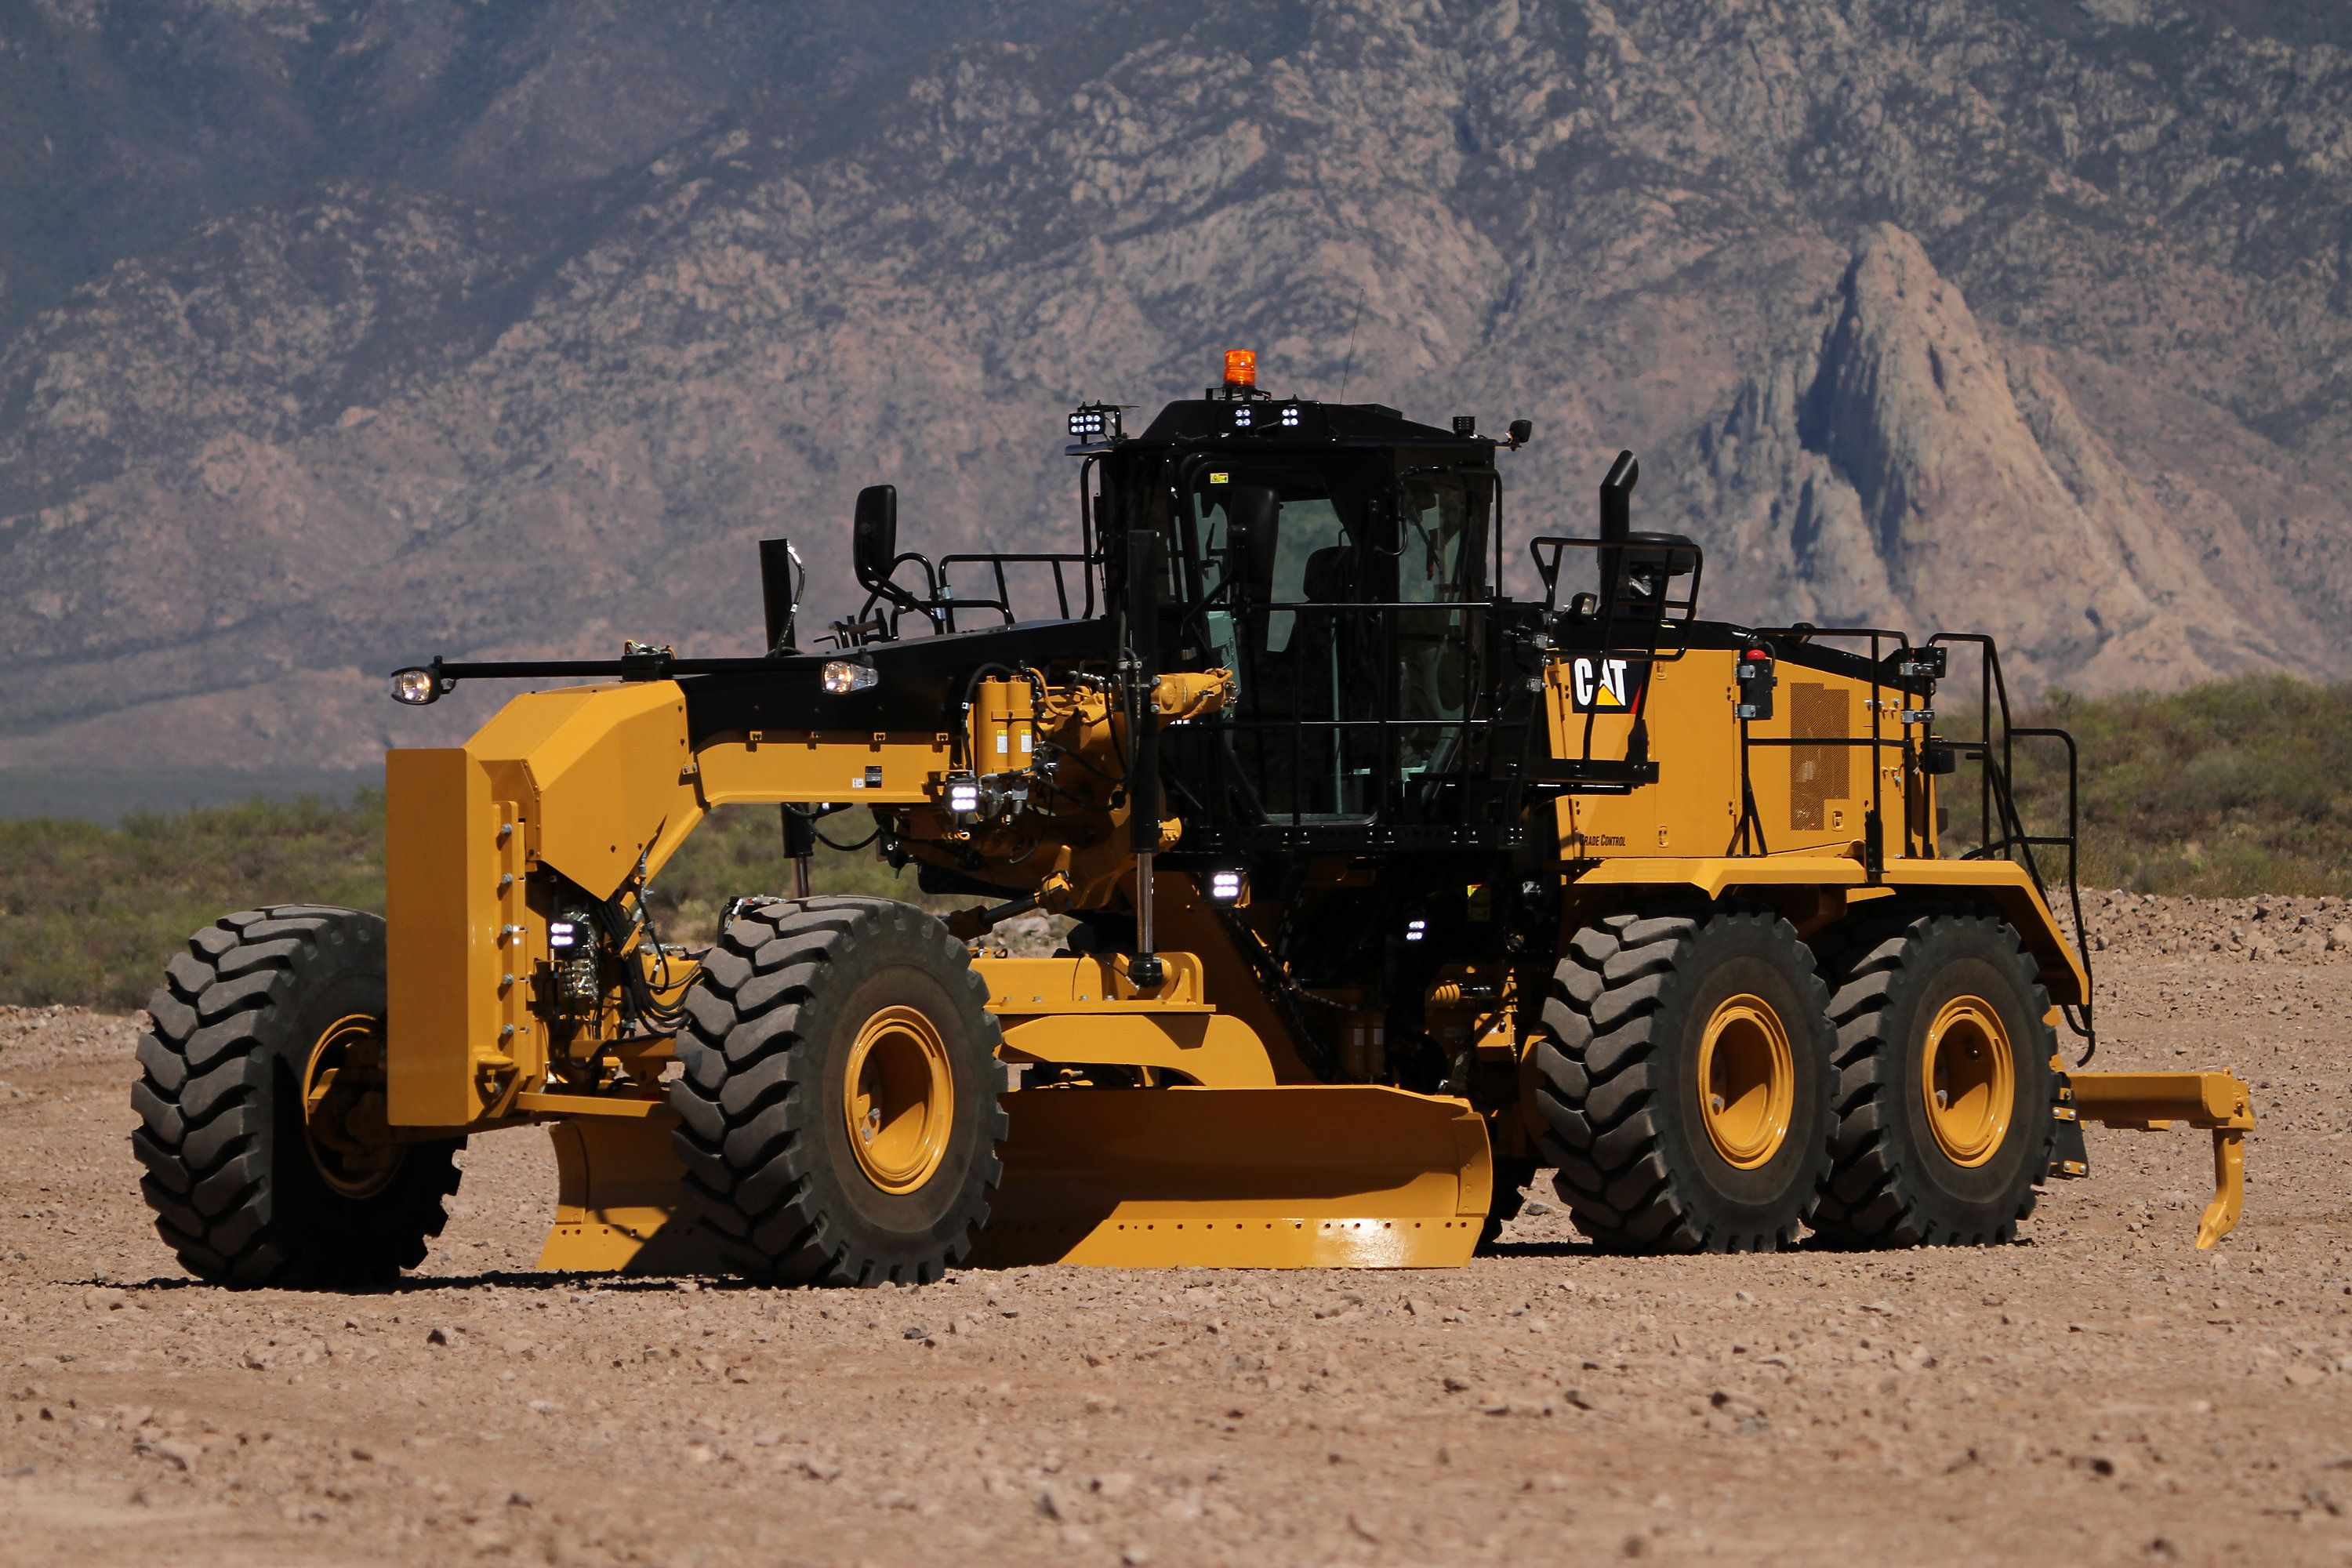 new cat 16m3 motor grader delivers greater fuel efficiency